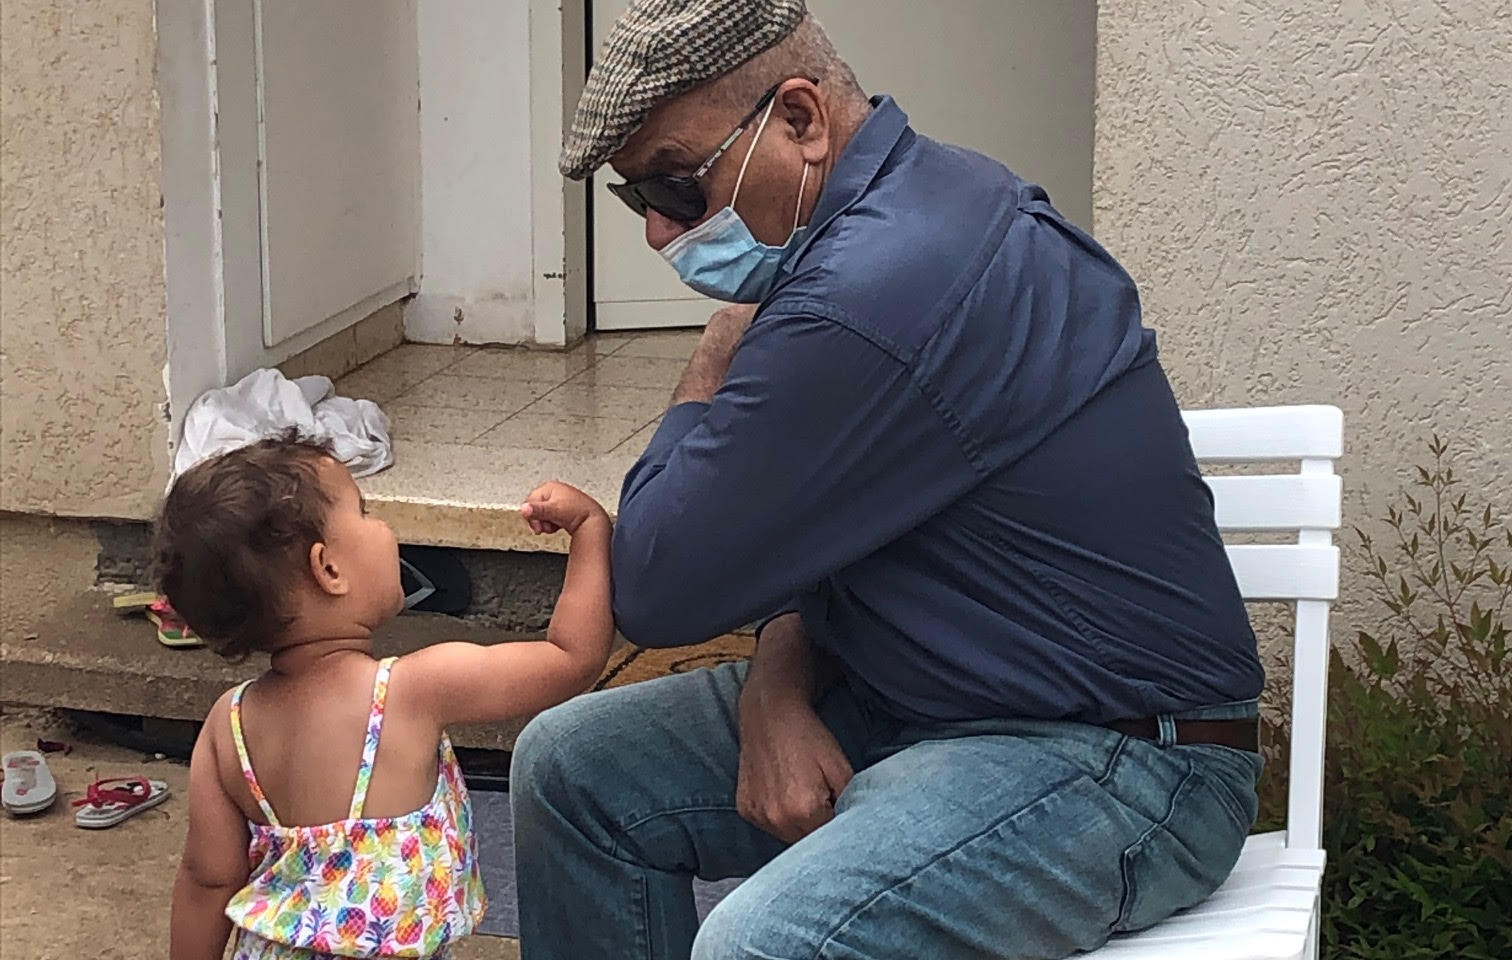 Intergenerational Touch